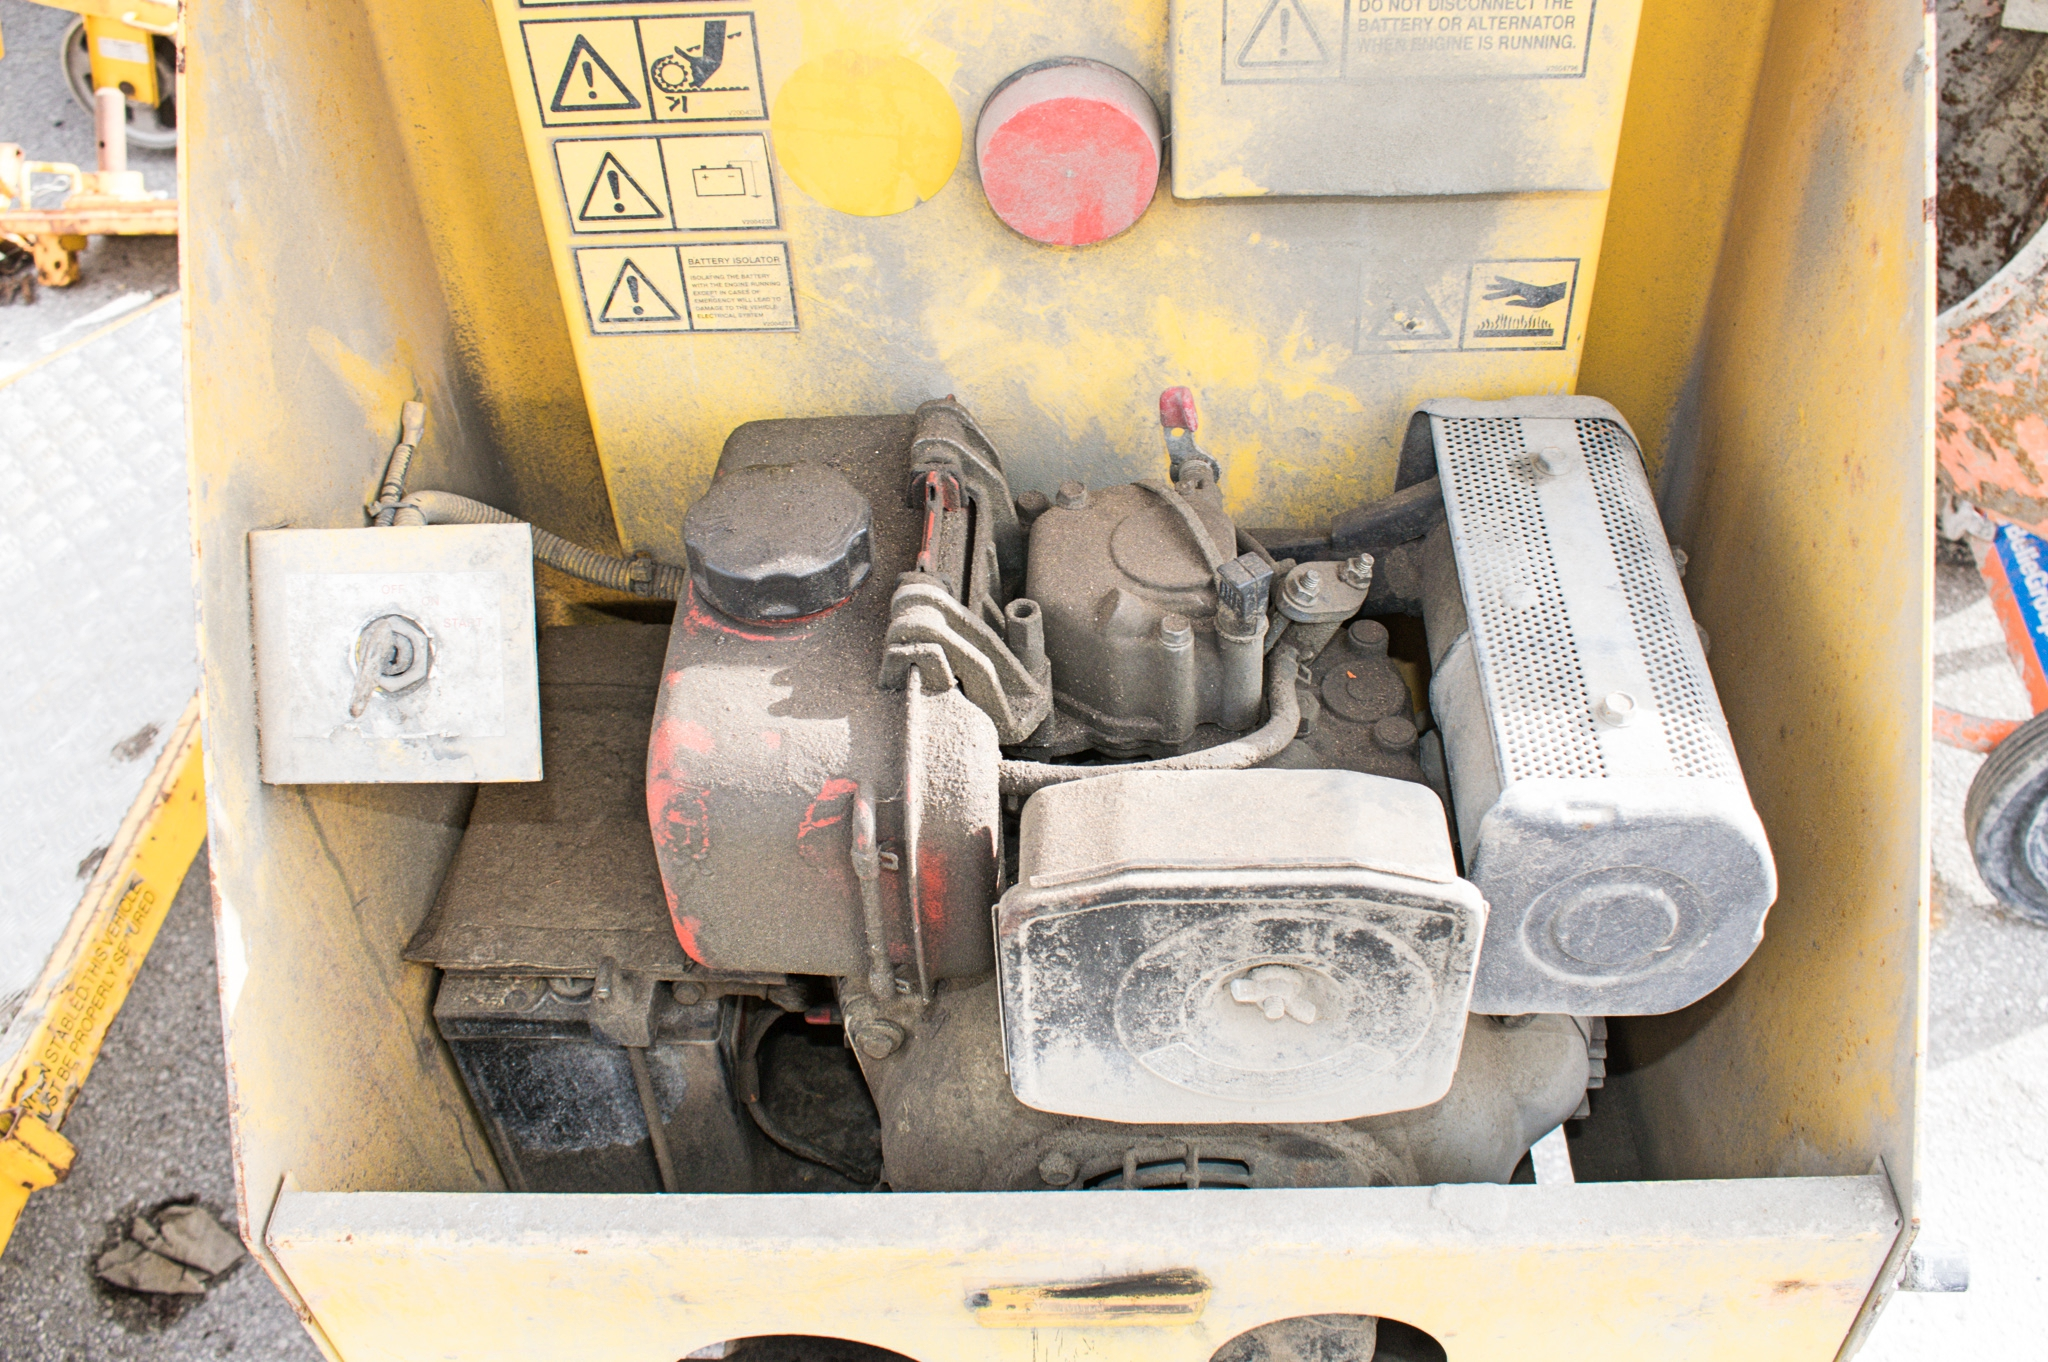 Winget electric start diesel driven site mixer A601569 - Image 3 of 3